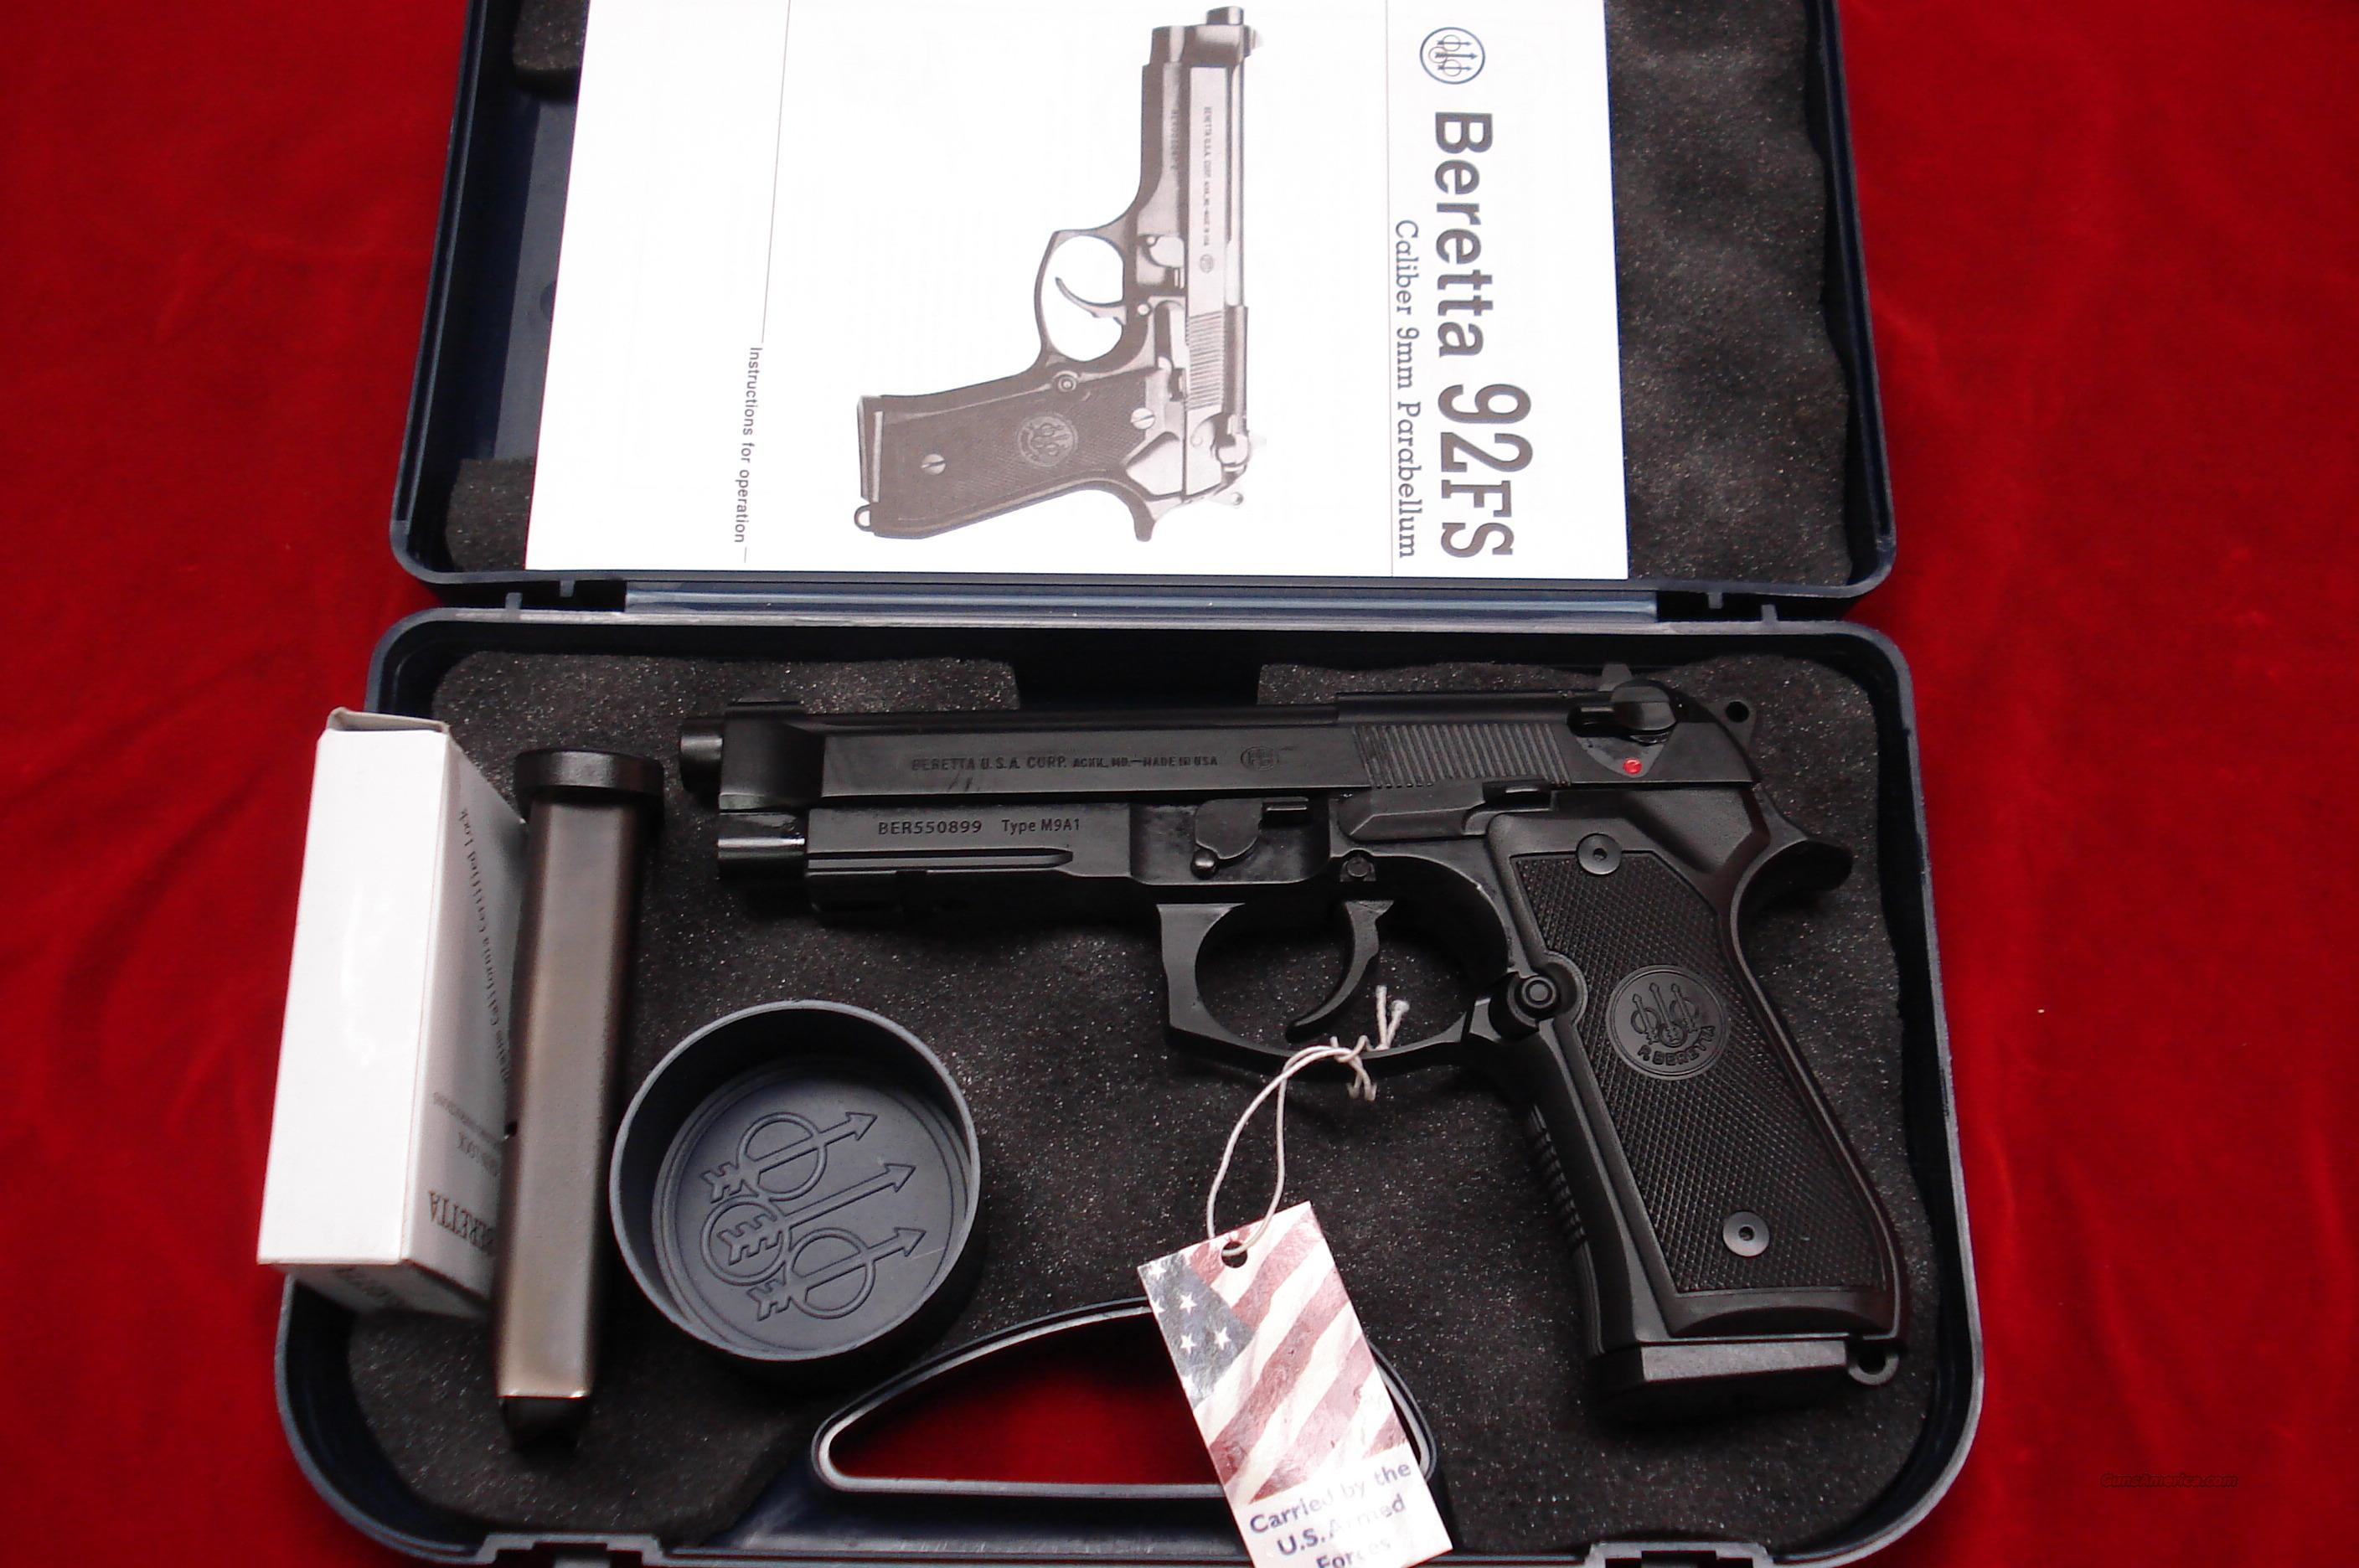 BERETTA M9A1 COMMERCIAL 9MM NEW IN THE BOX  Guns > Pistols > Beretta Pistols > Model 92 Series